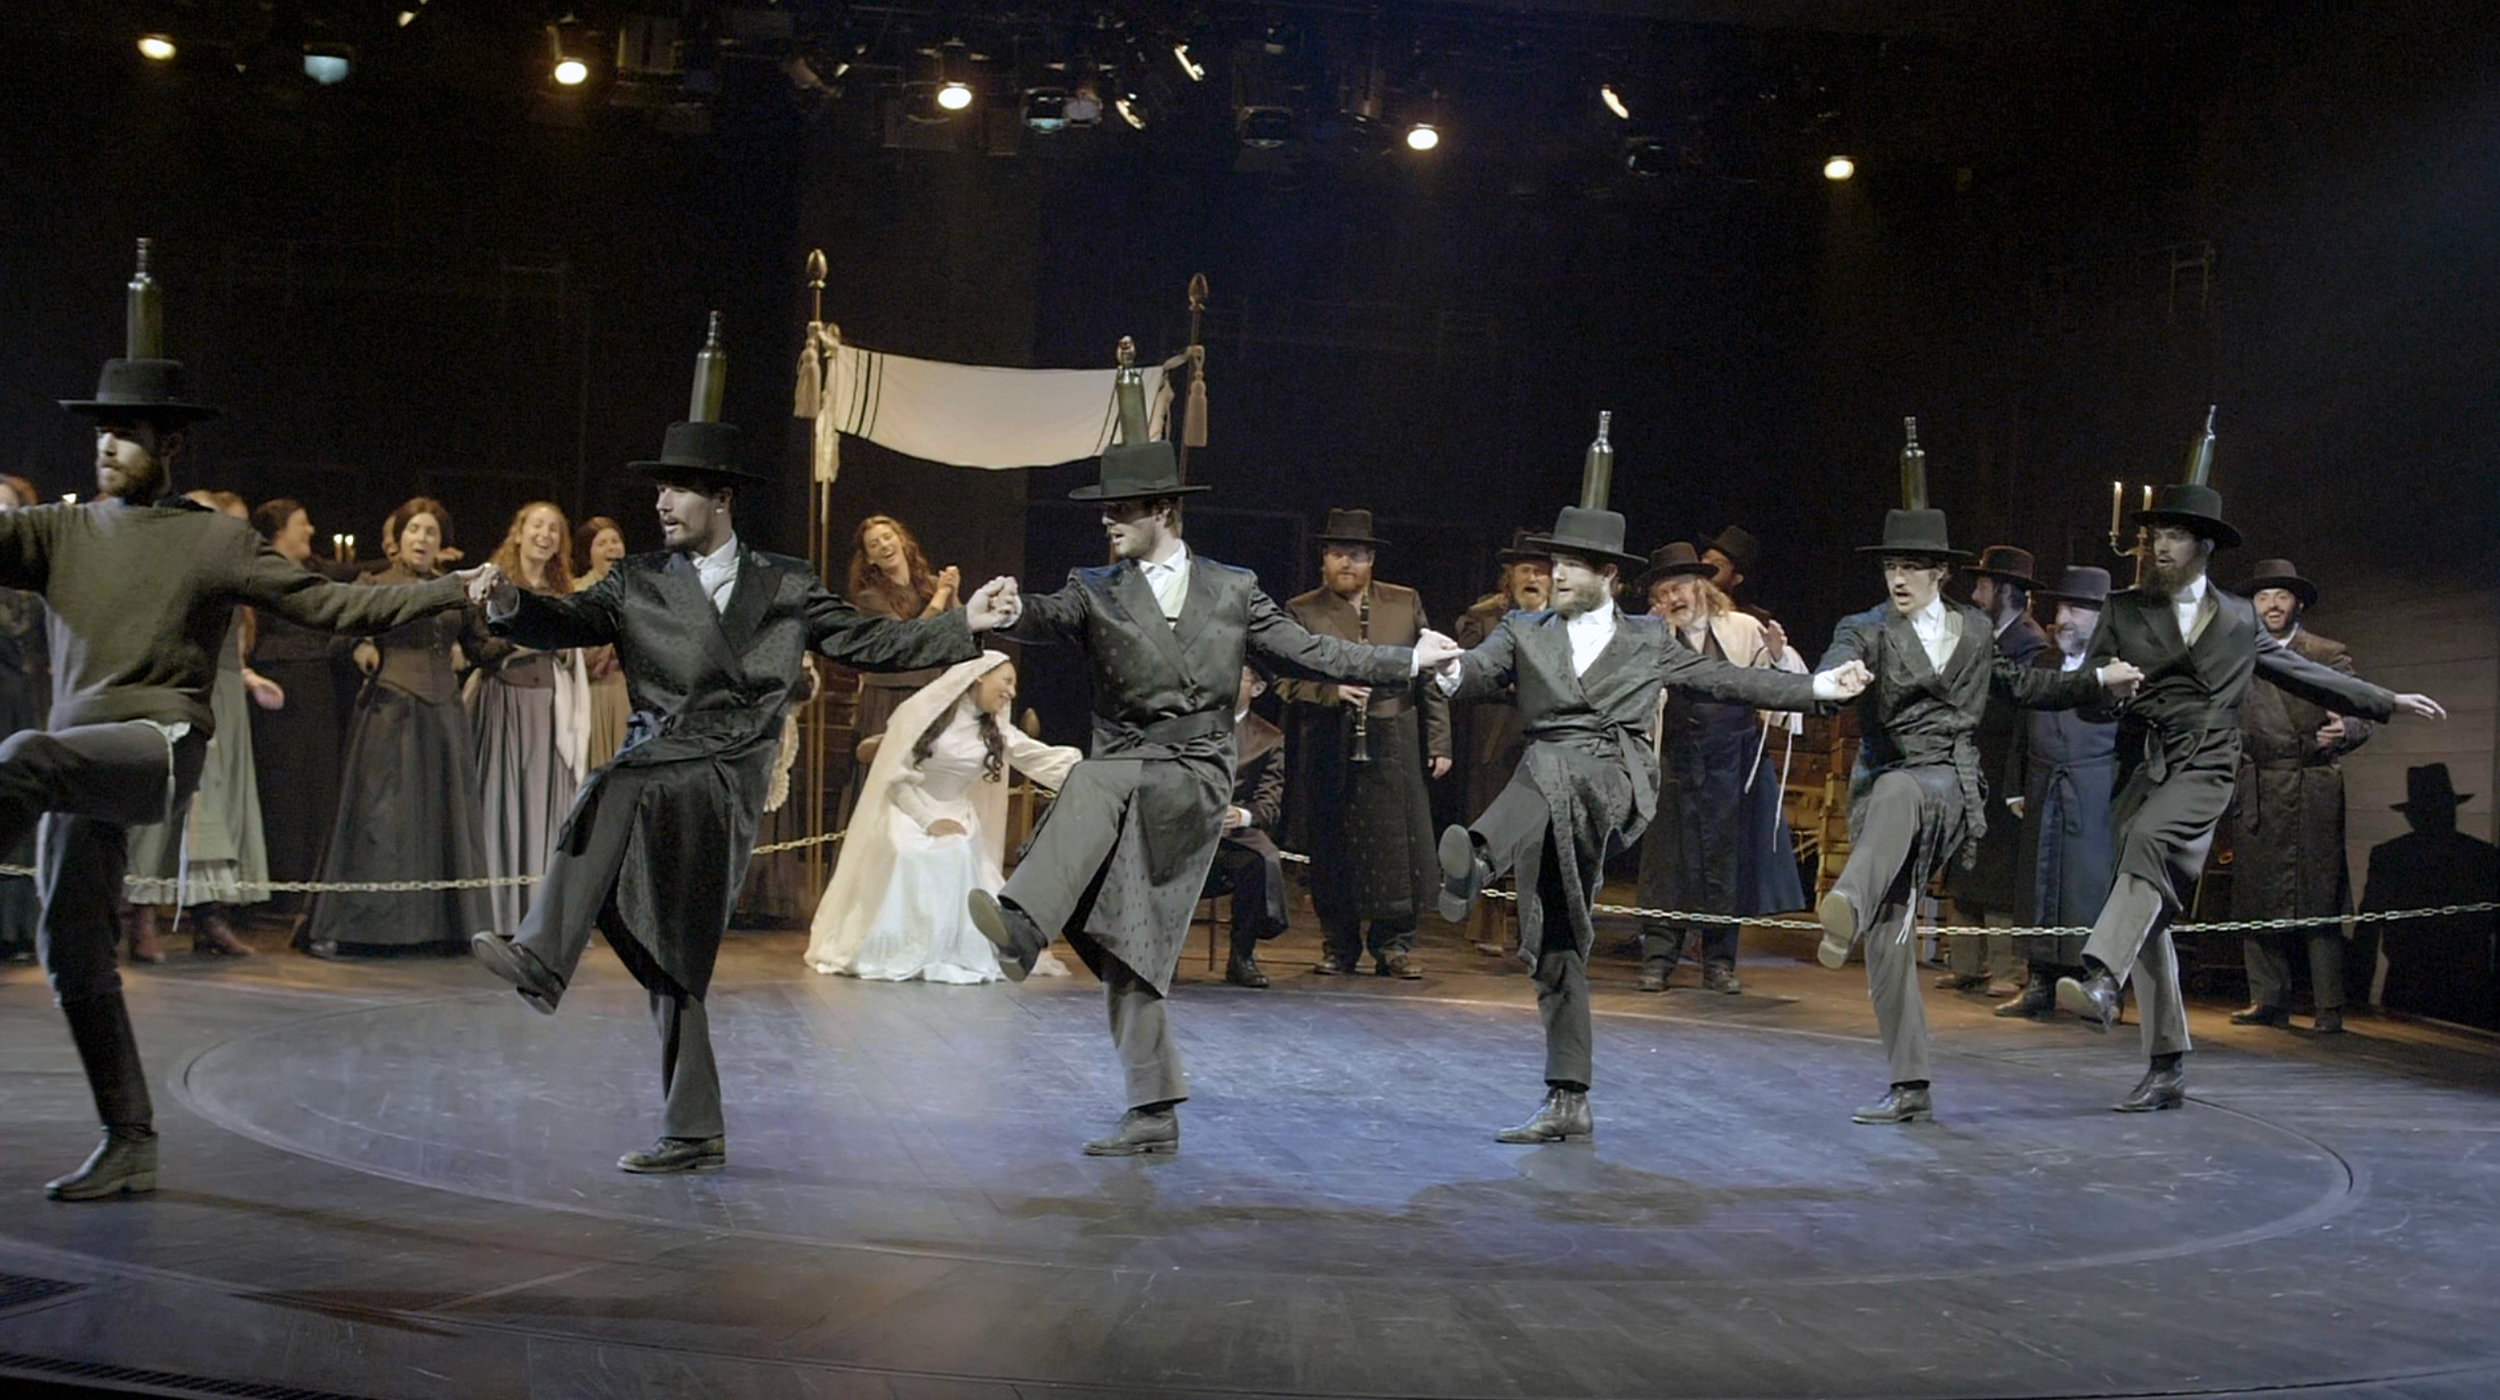 """The cast of a production of """"Fiddler on the Roof"""" at Chichester Festival Theatre in the UK perform the famous bottle dance, in a scene from the documentary """"Fiddler: A Miracle o Miracles."""" (Photo by Chichester Festival Theatre, courtesy of Roadside Attractions and Samuel Goldwyn Films.)"""